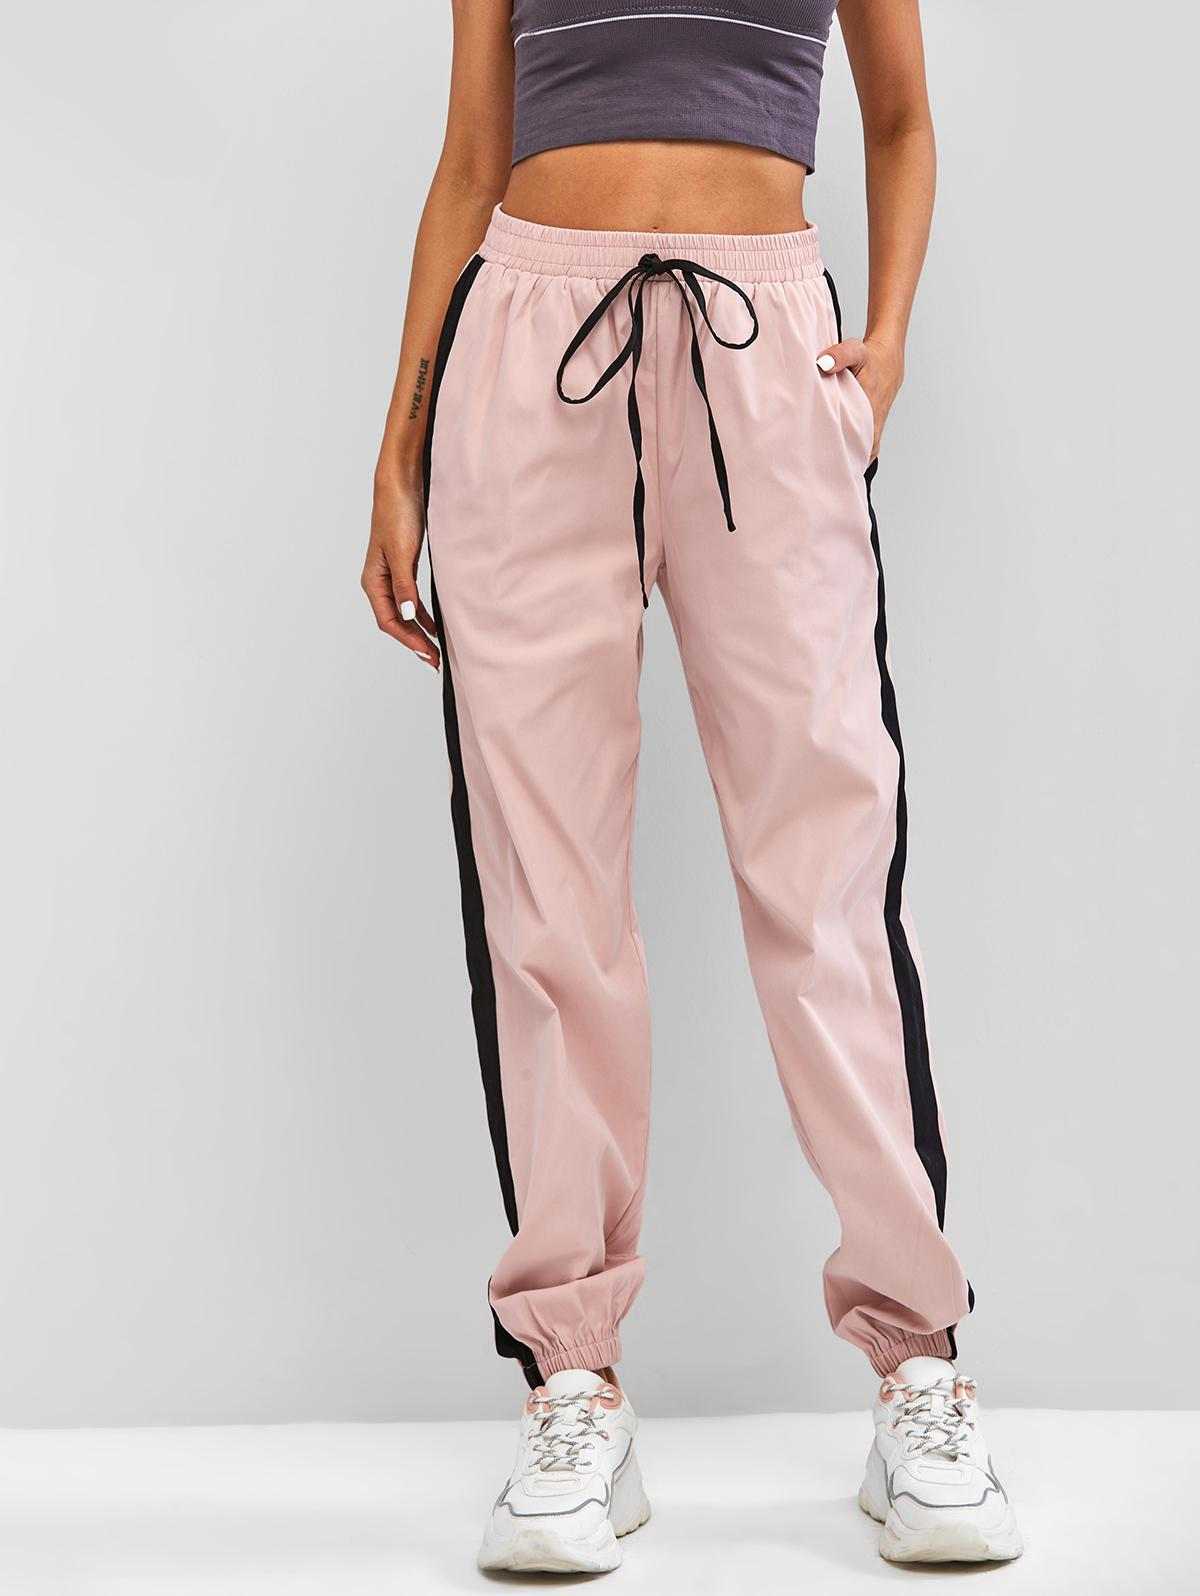 ZAFUL Contrast Trim Elastic Cuff Pants